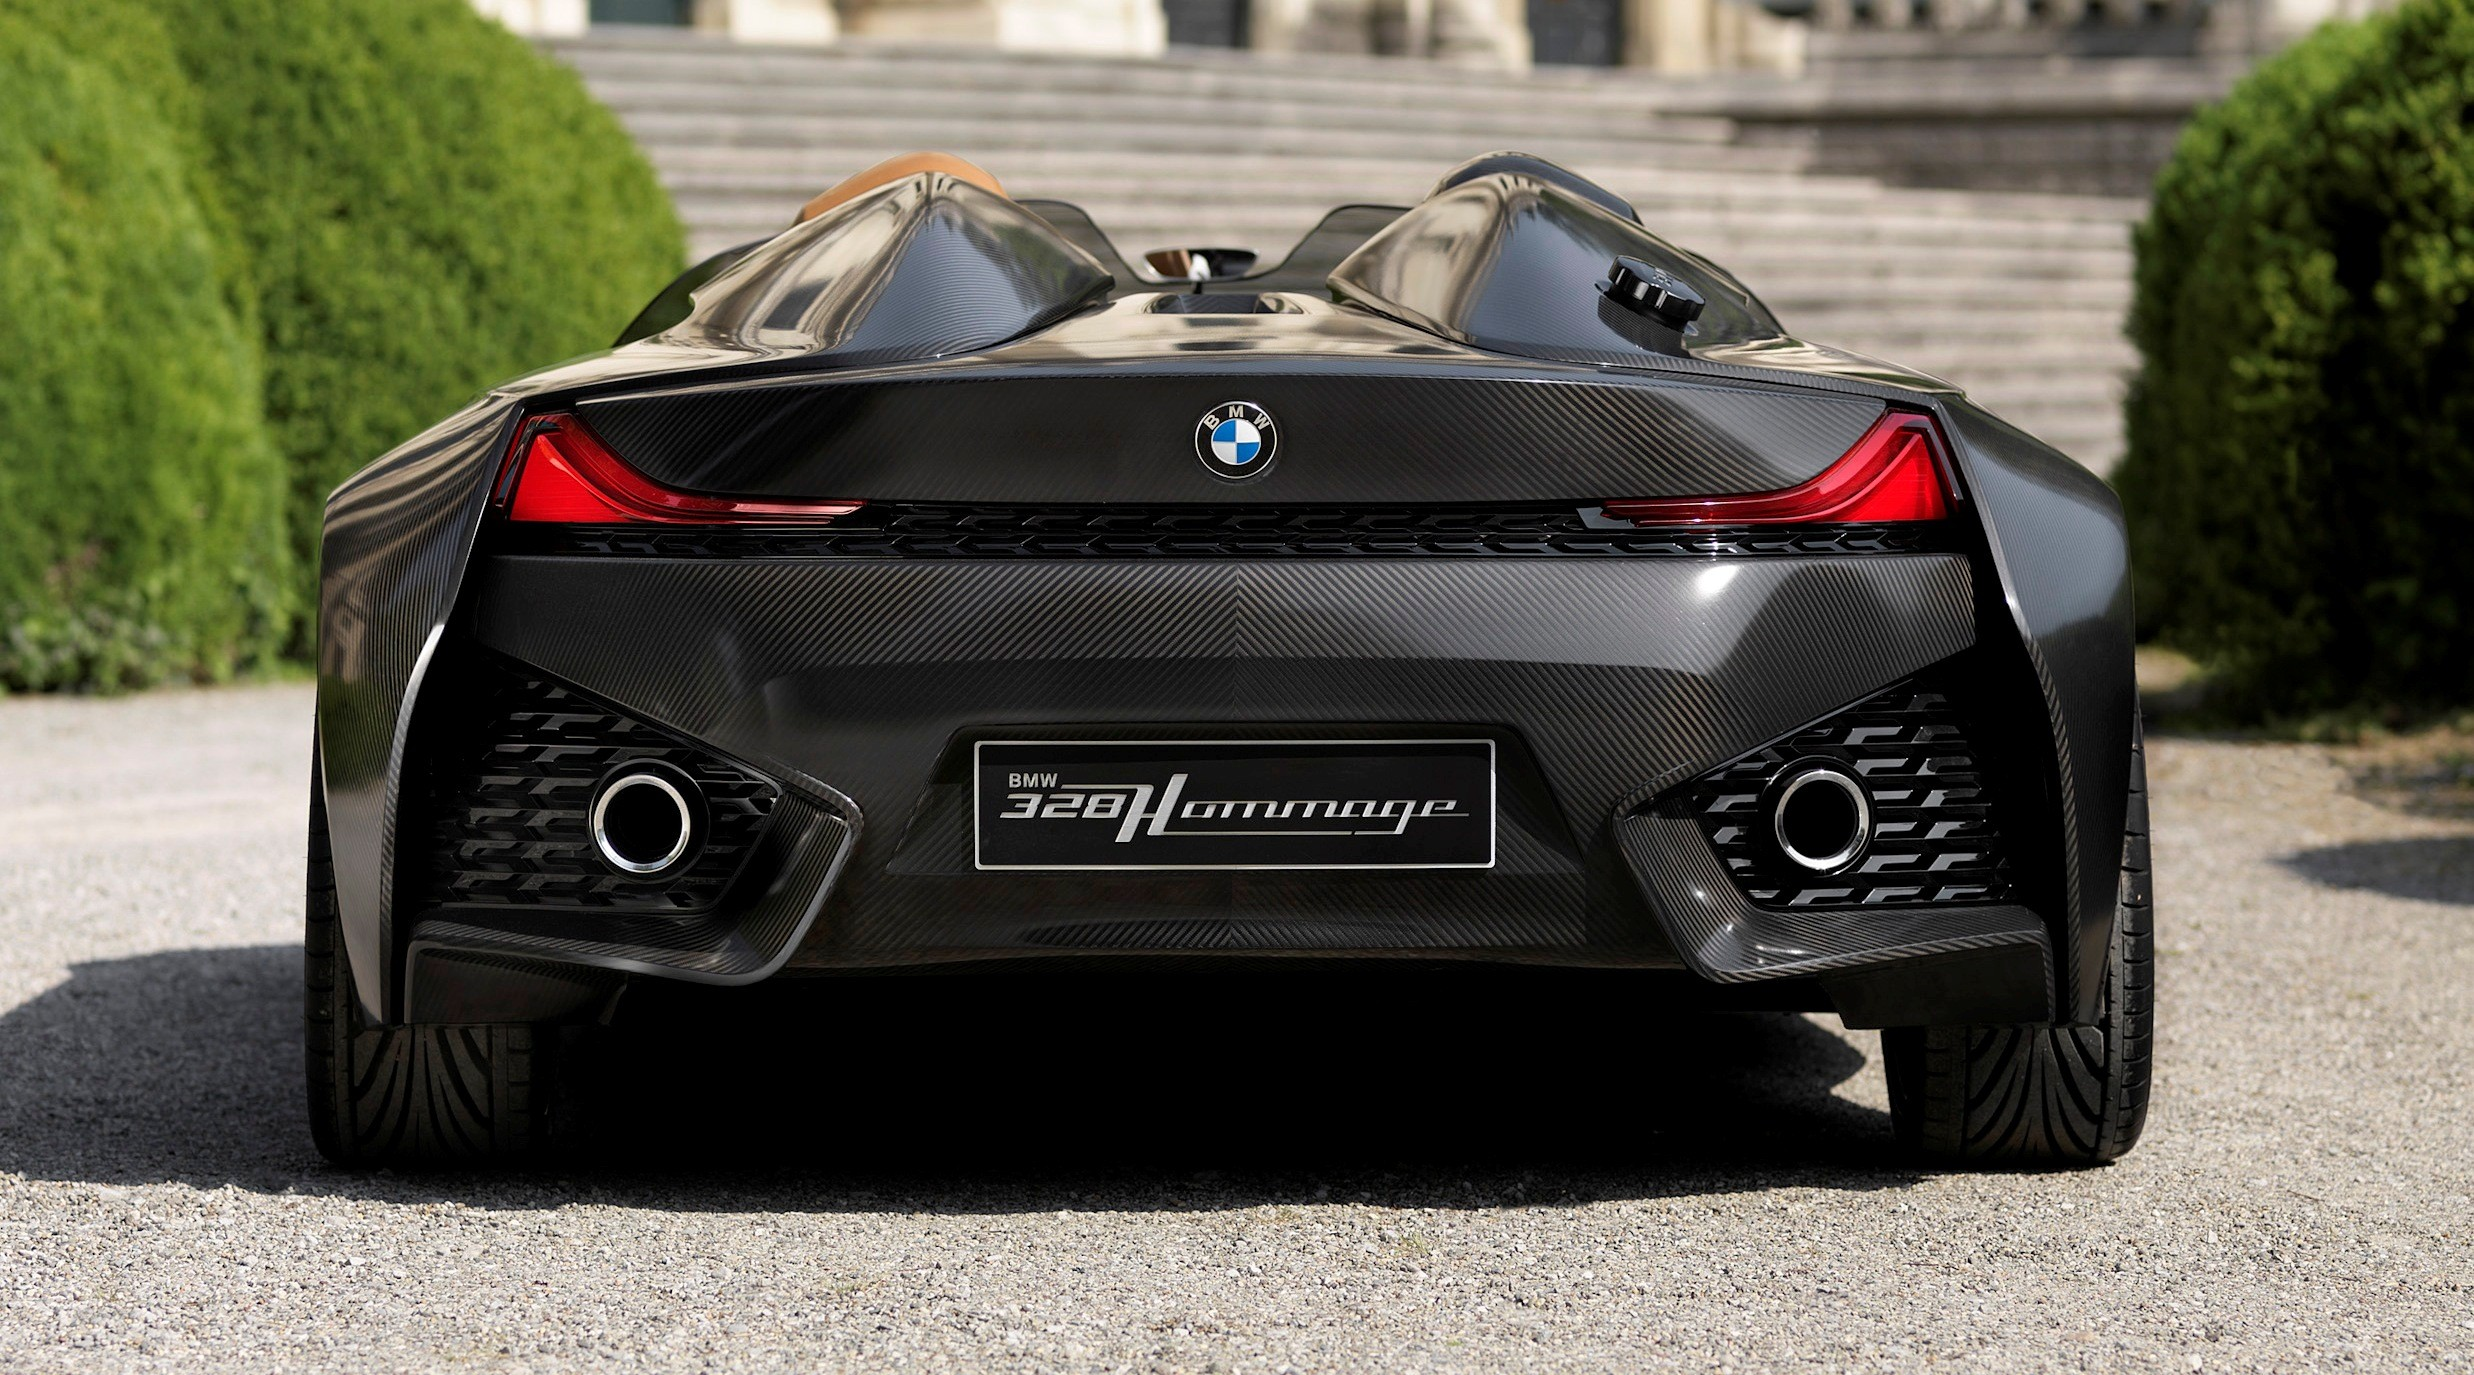 Concept Flashback 2011 Bmw 328 Hommage Is Retro Themed 2016 Z4 Teaser